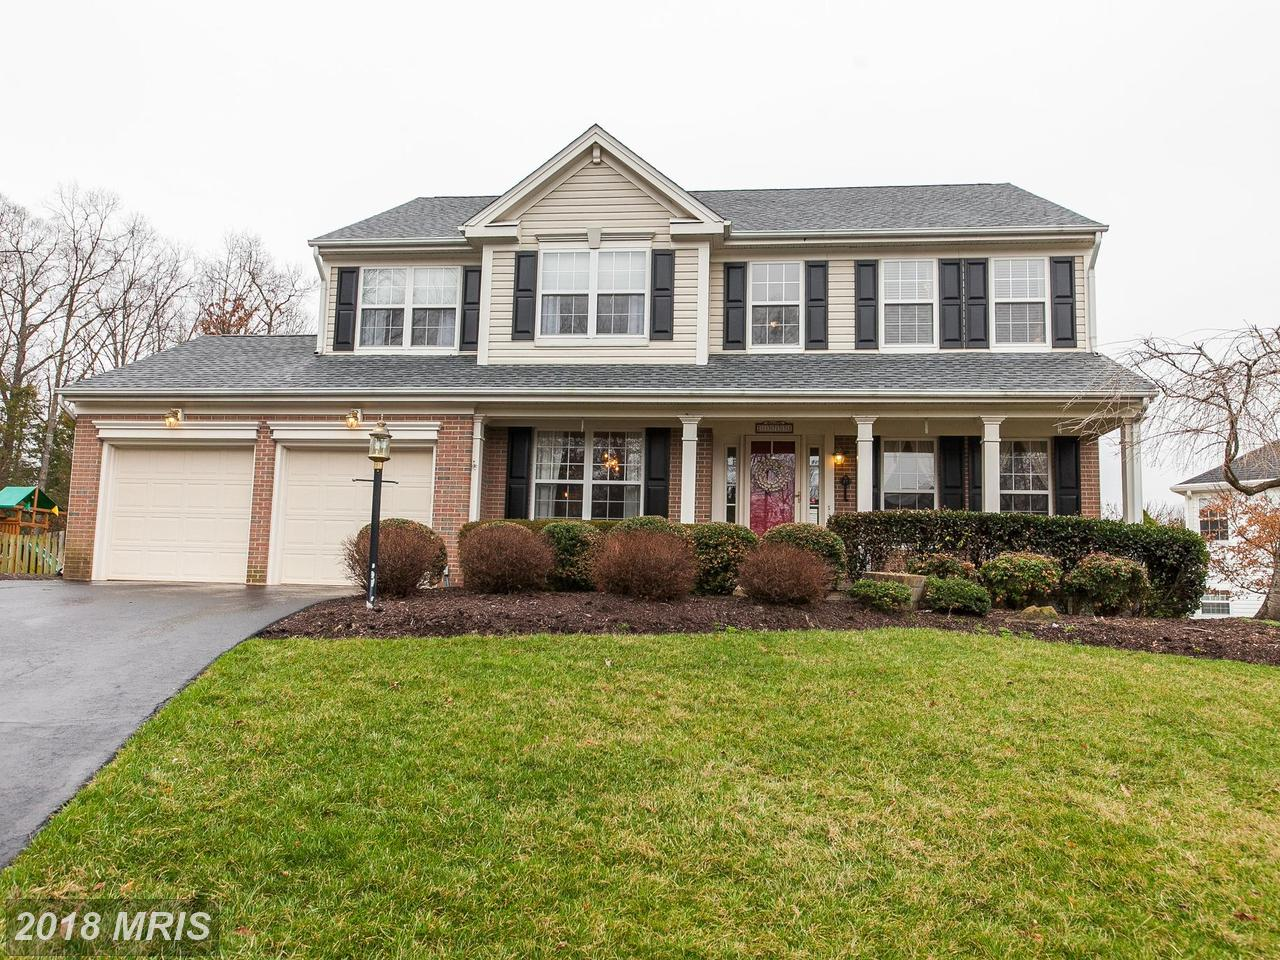 Homes For Sale In Roanoke Va With A Pool